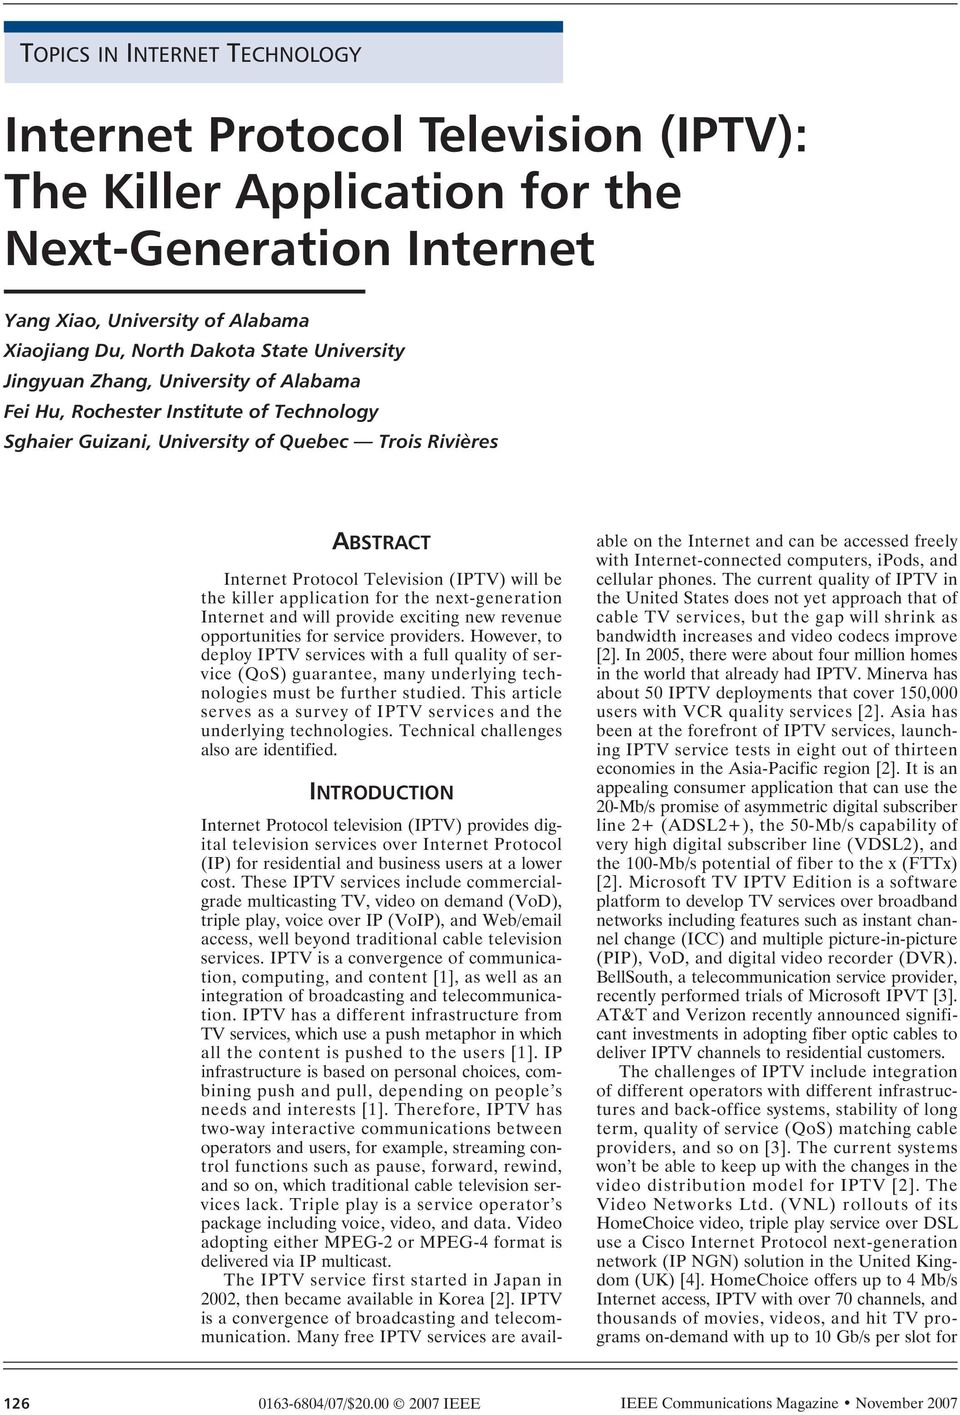 application for the next-generation Internet and will provide exciting new revenue opportunities for service providers.